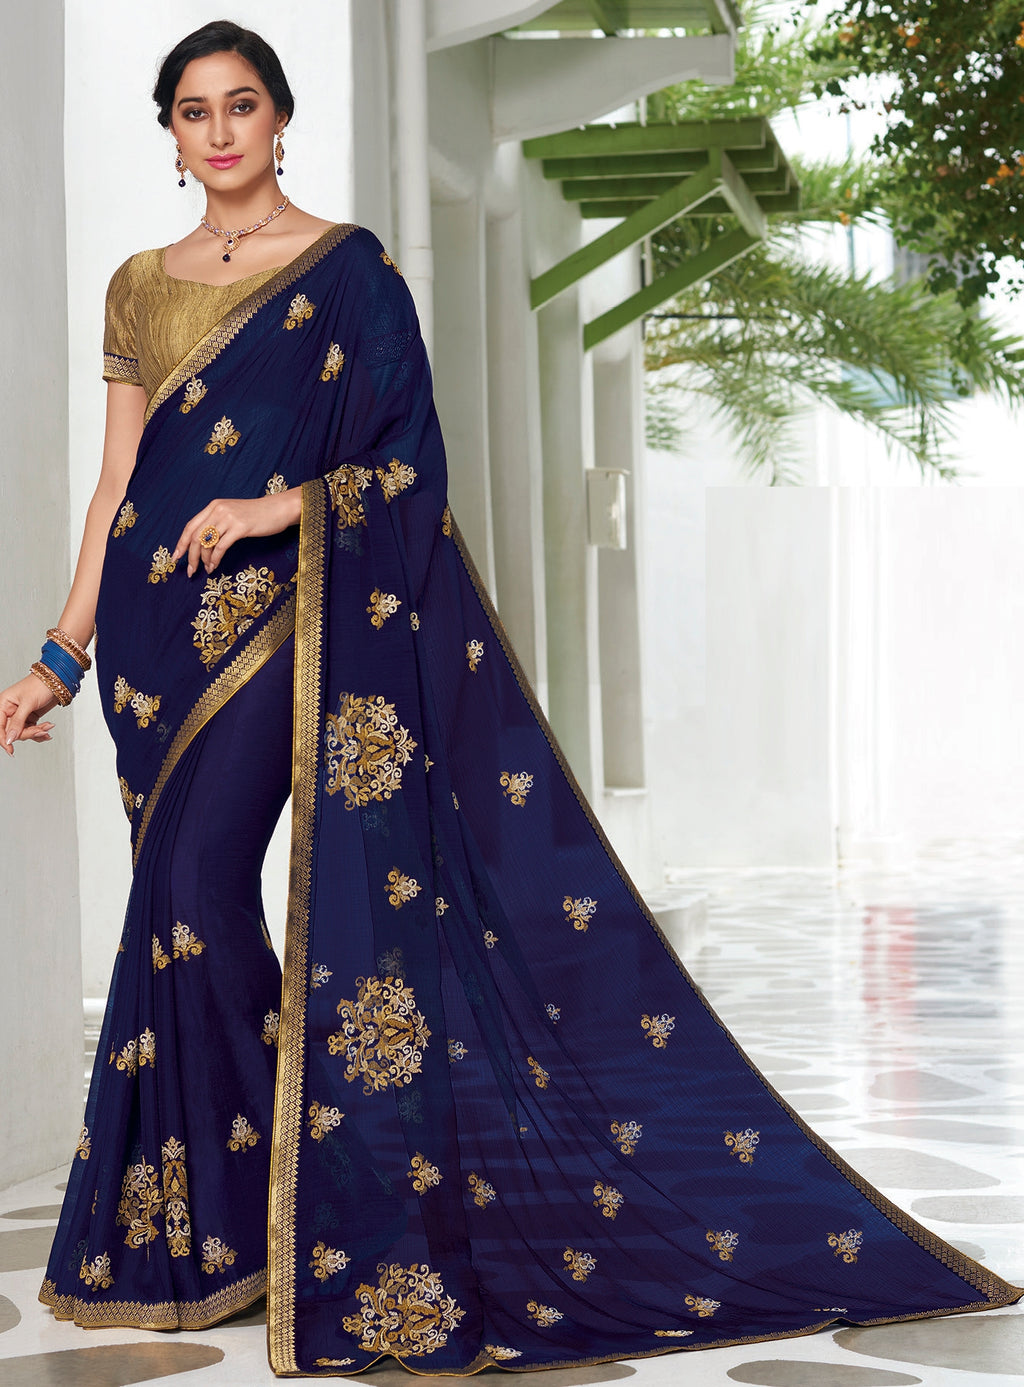 Blue  Color Chiffon Designer Party Wear Sarees  Laxmipati Pankhudi Catlog SJ-10405